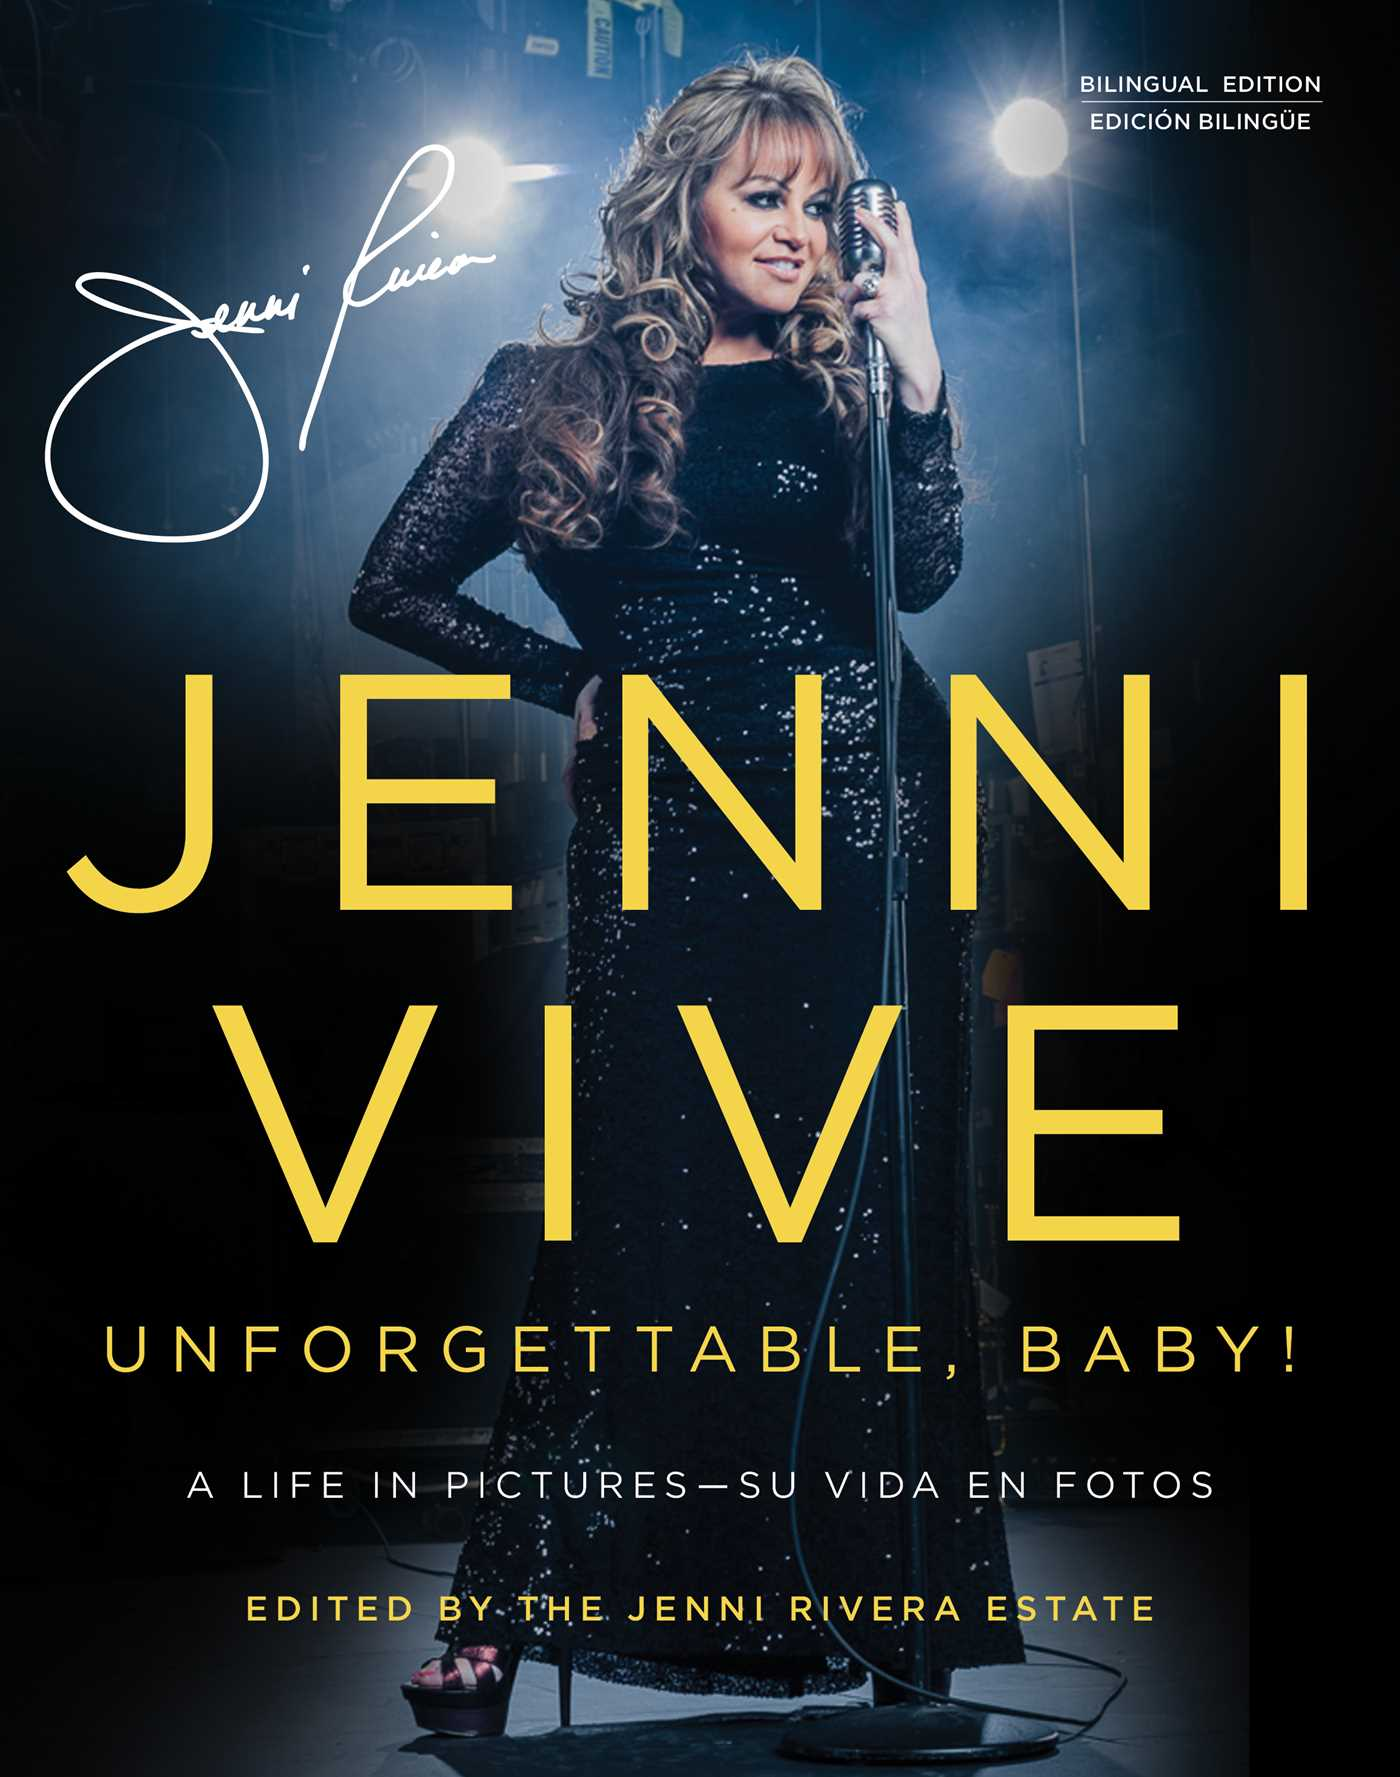 Jenni vive unforgettable baby bilingual edition 9781501101328 hr